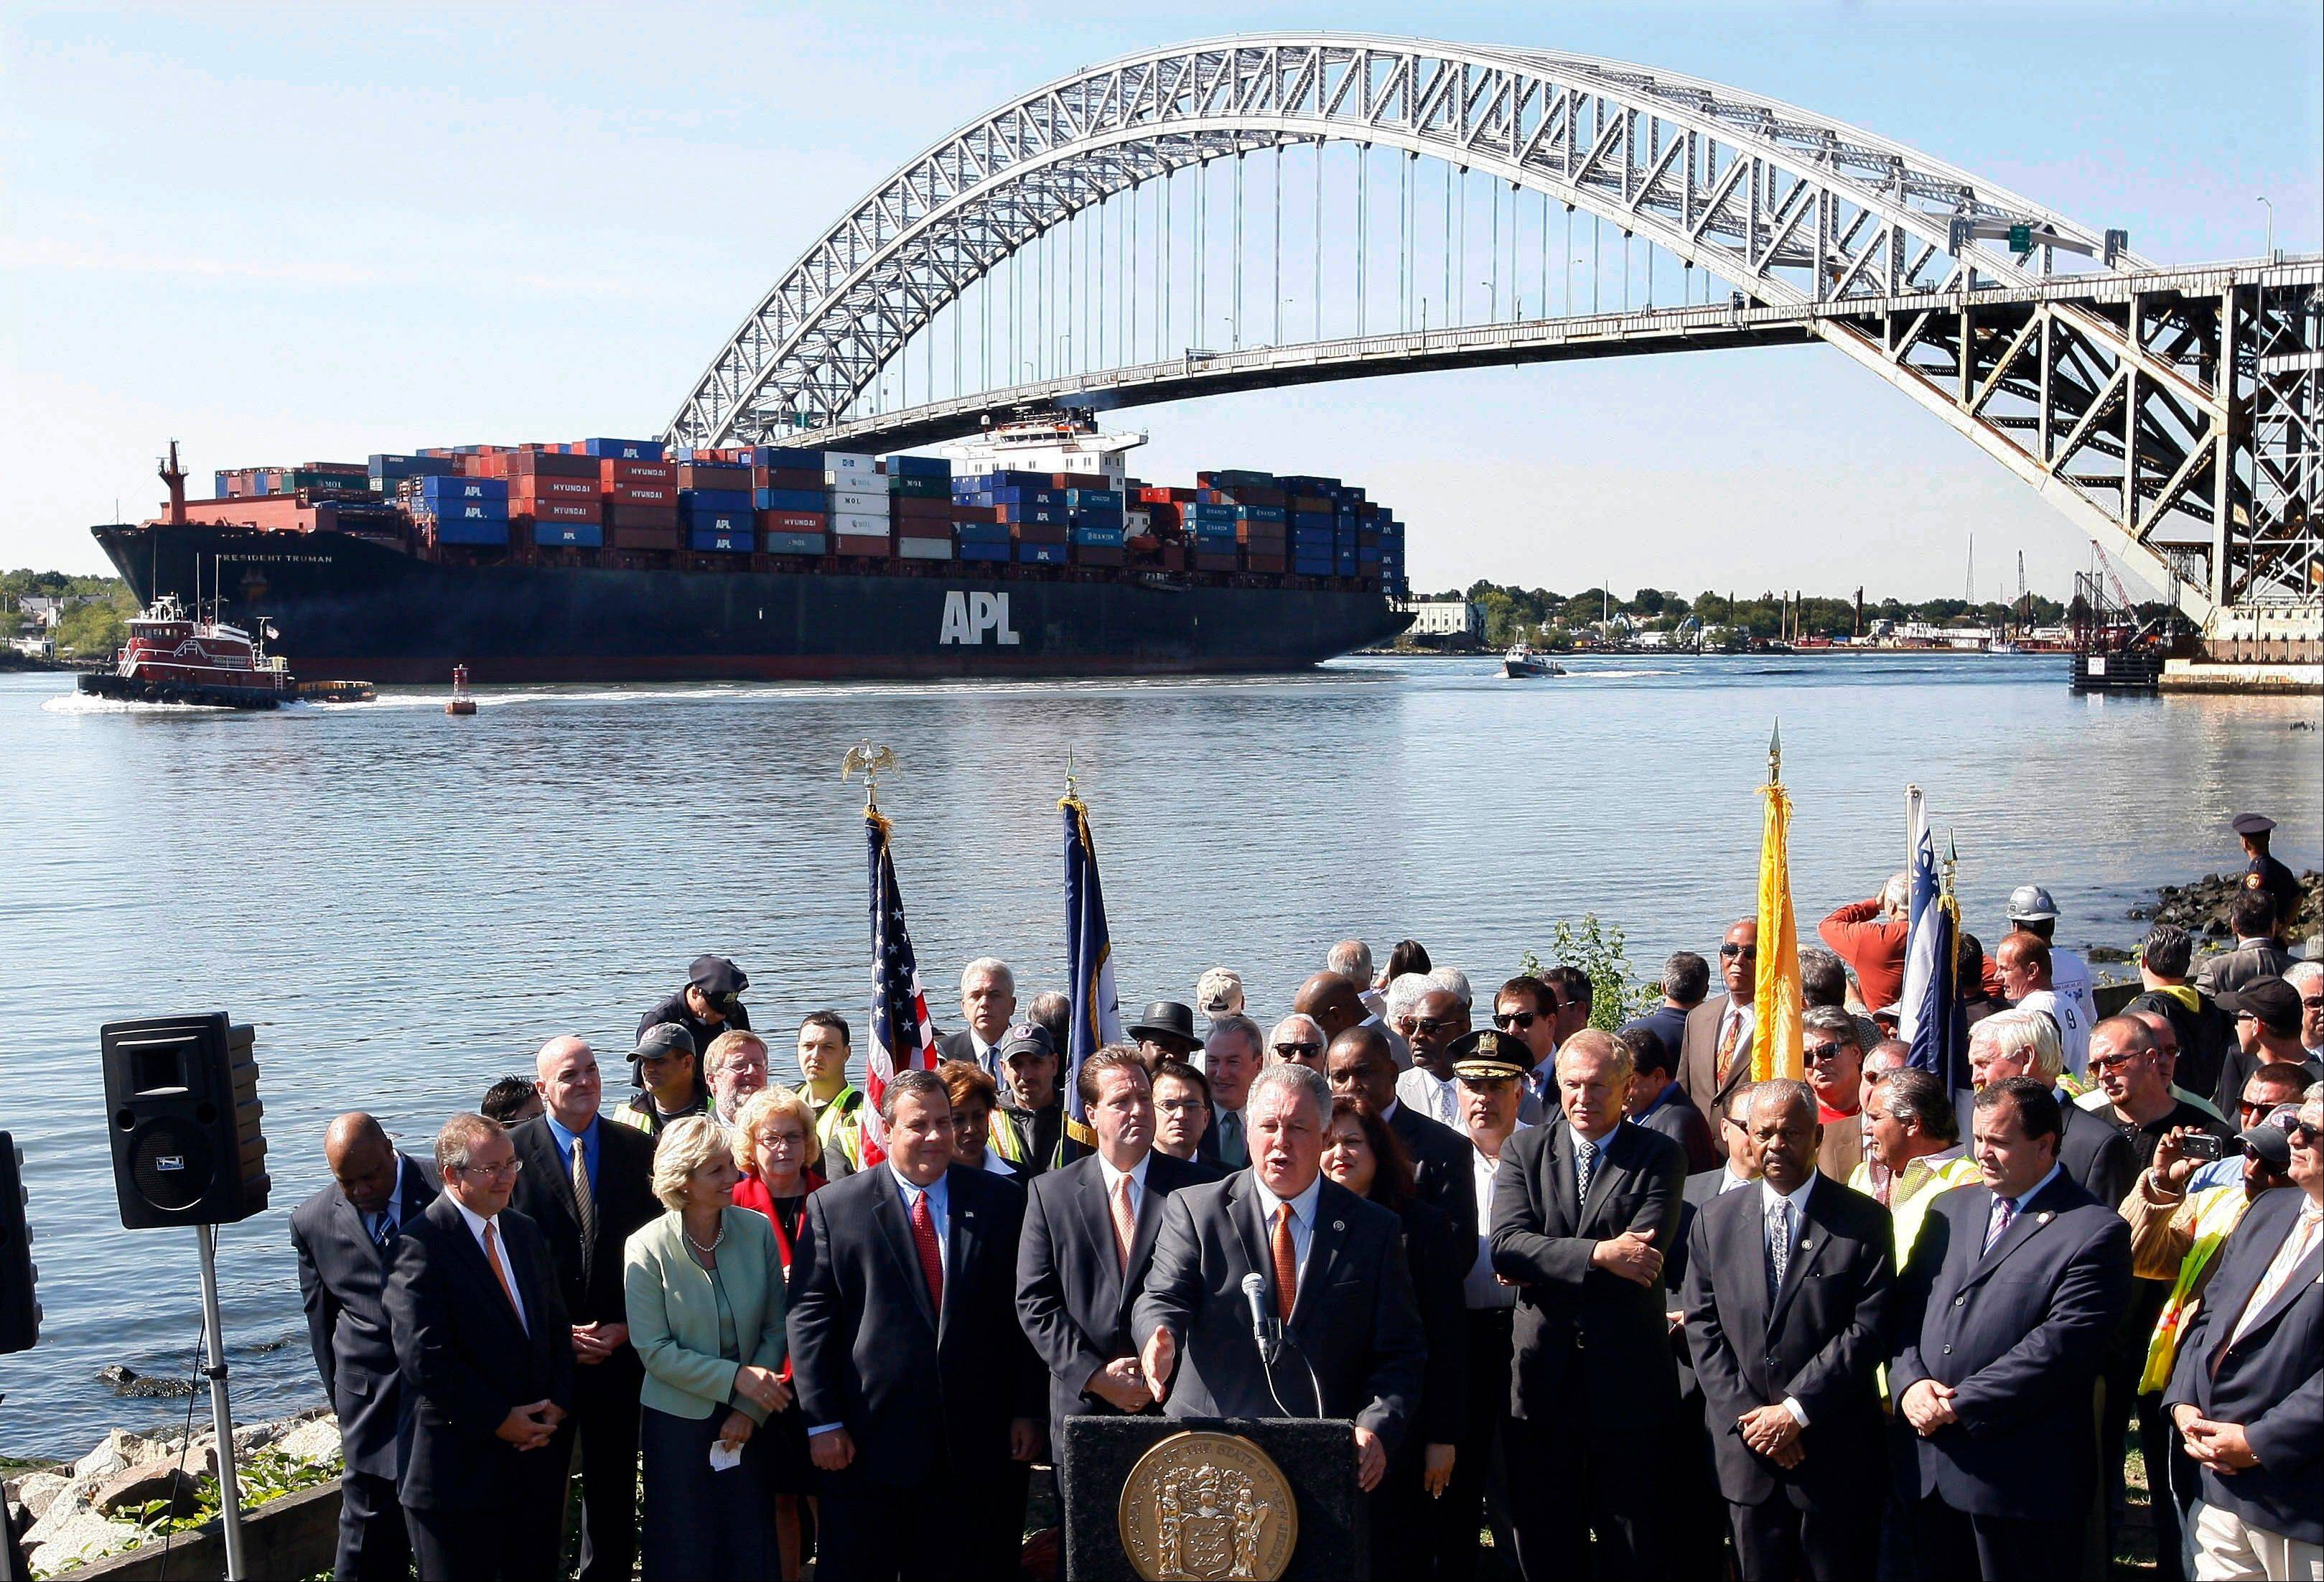 Associated Press/Sept. 21, 2010The President Truman, a large cargo ship, passes under the Bayonne Bridge in Bayonne, N.J., as New Jersey Gov. Chris Christie, third left, front, and Lt. Gov. Kim Guadagno, fourth left, front, listen with others, as Rep. Albio Sires of New Jersey talks about plans to raise the height of the bridge to accommodate the larger next generation of cargo ships.